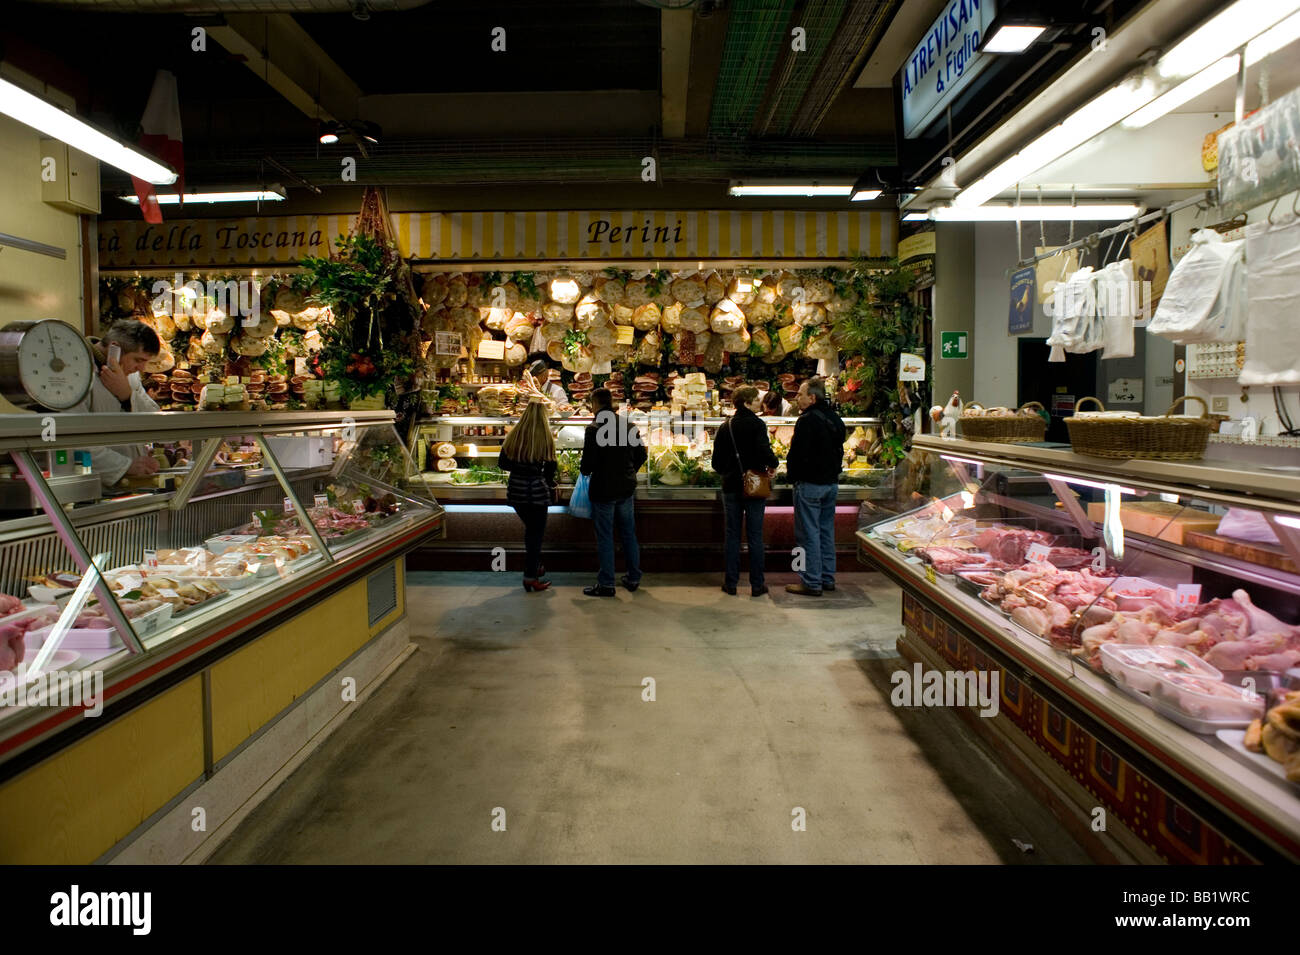 Florence Tuscany Italy The city of the Renaissance Photo shows The Mercato Centrale Central Market from 1874 Meats - Stock Image